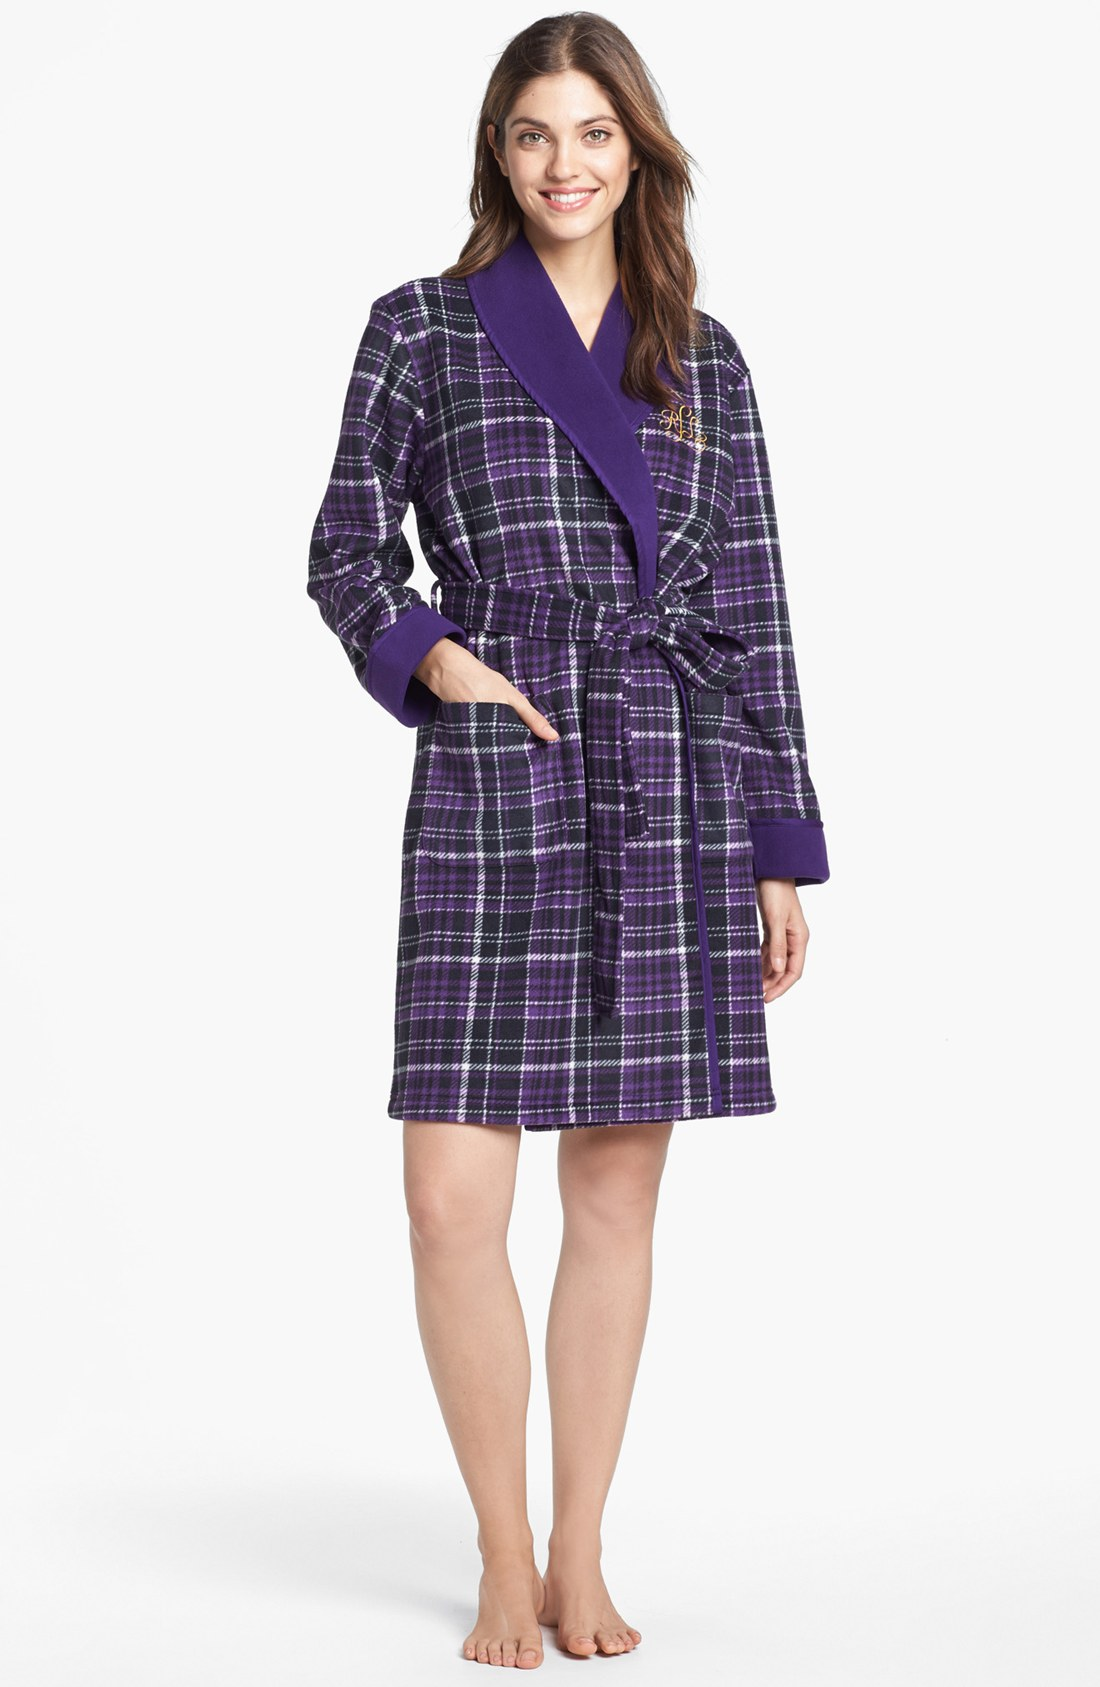 lauren by ralph lauren shawl collar robe in purple emerson tartan purple plaid lyst. Black Bedroom Furniture Sets. Home Design Ideas